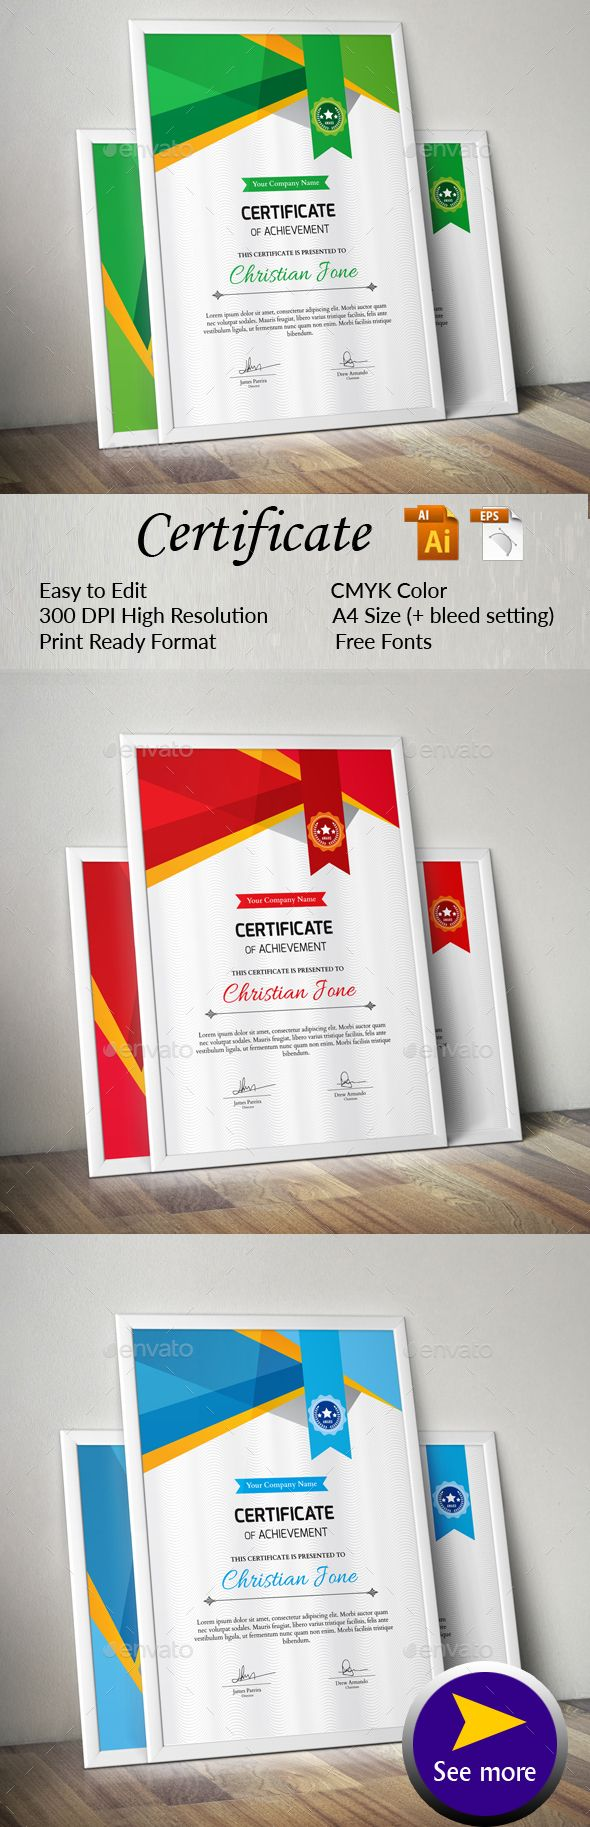 Certificate certificate templates and font logo certificate by sketchgraph a great creative certificate template for creative person features easy to xflitez Choice Image